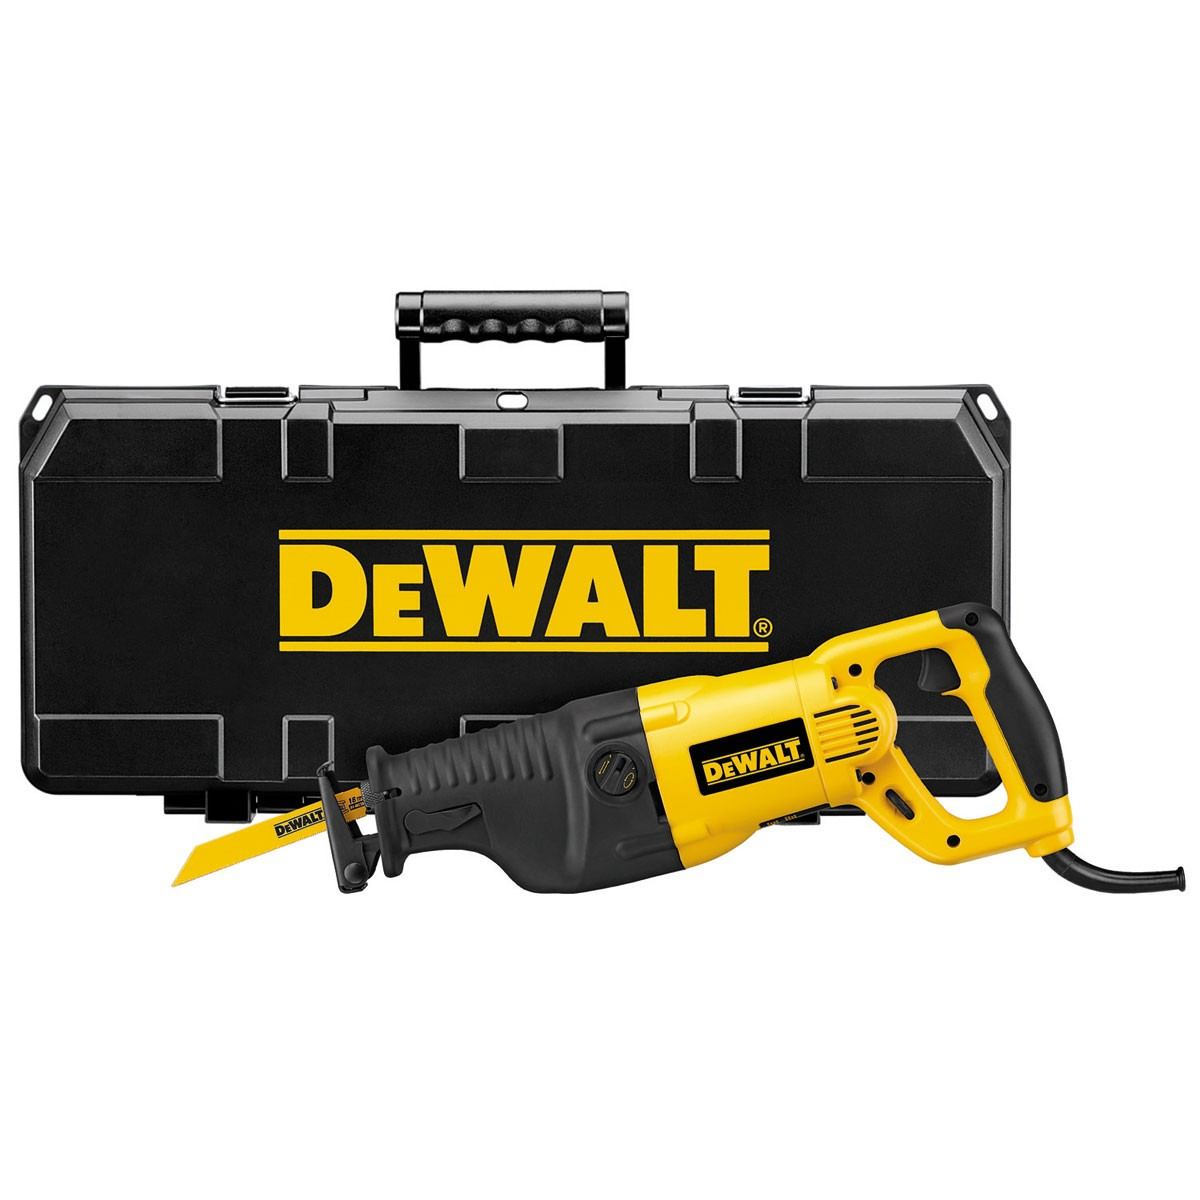 DeWalt DW311K Heavy Duty Reciprocating Saw 240v